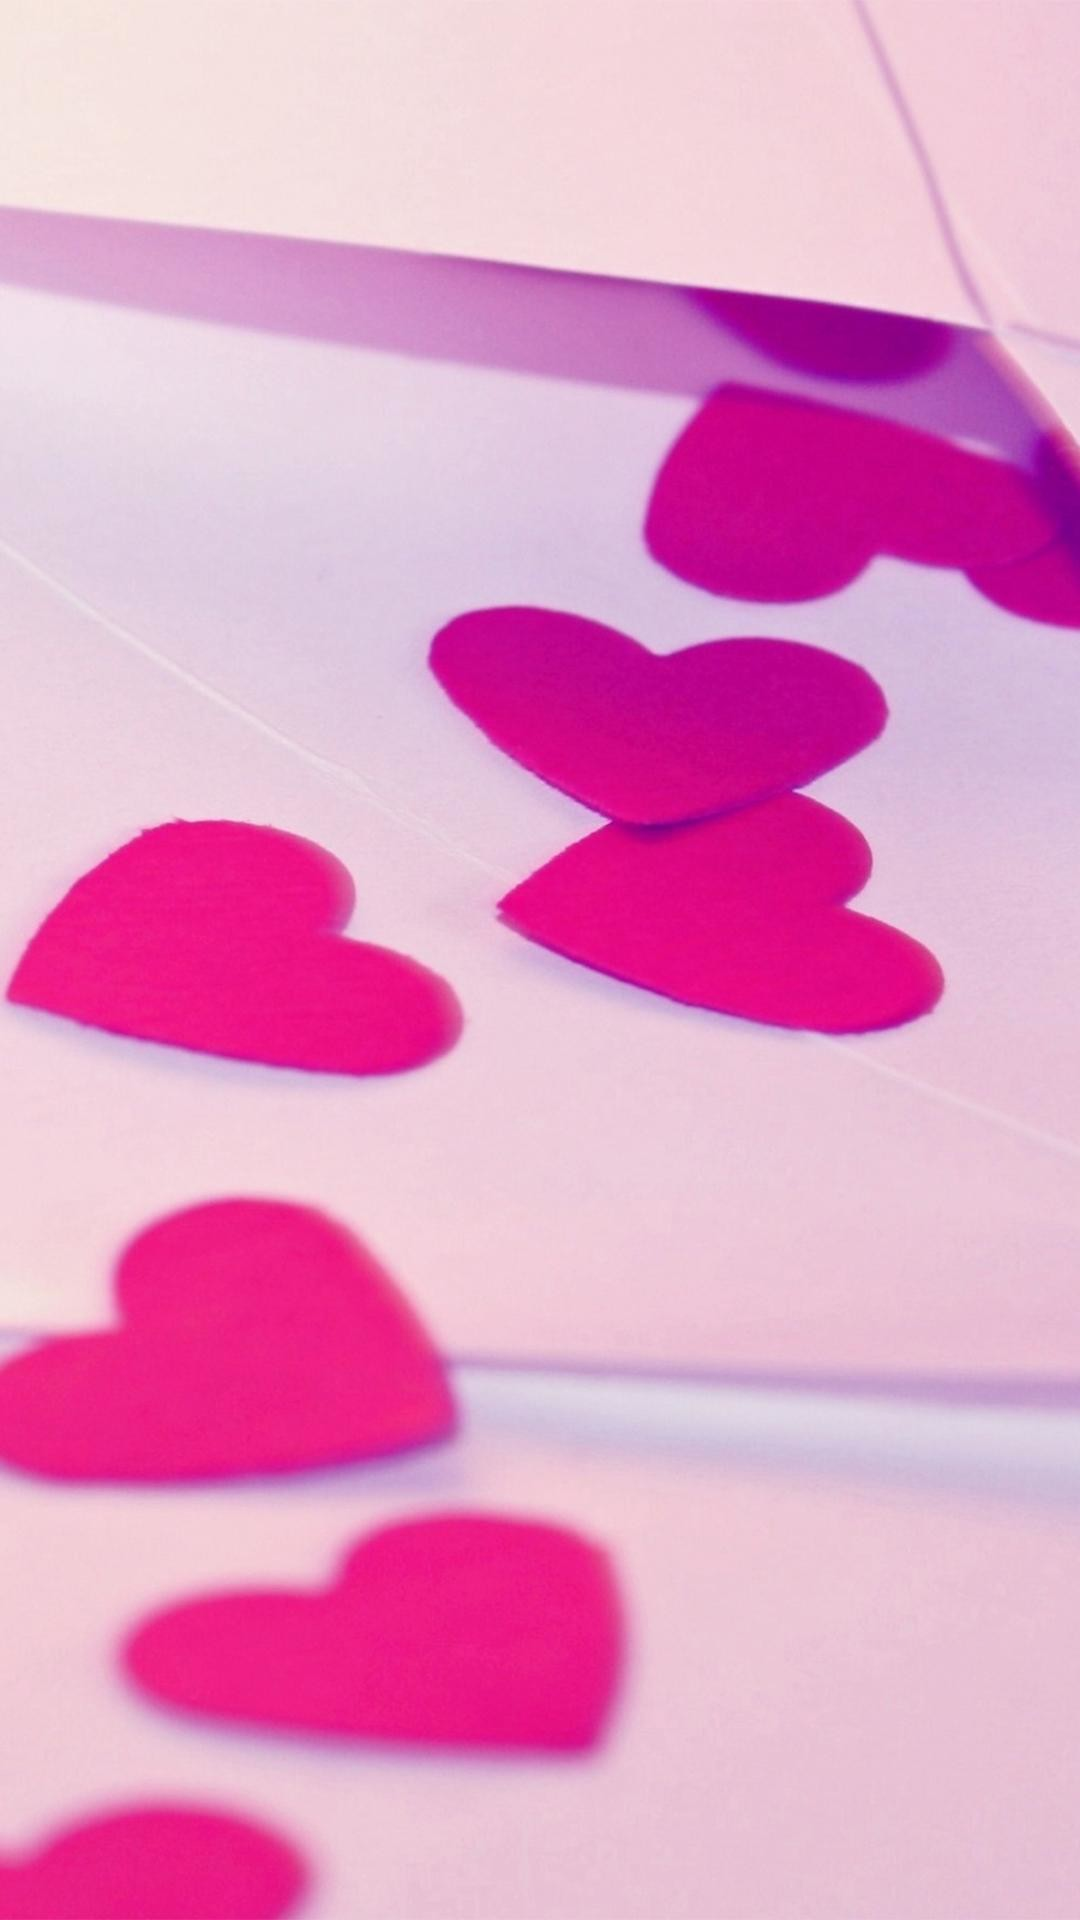 Wiki Cool Pink Love Iphone Background Pic   Data Src - Love Iphone Wallpaper Hd - HD Wallpaper